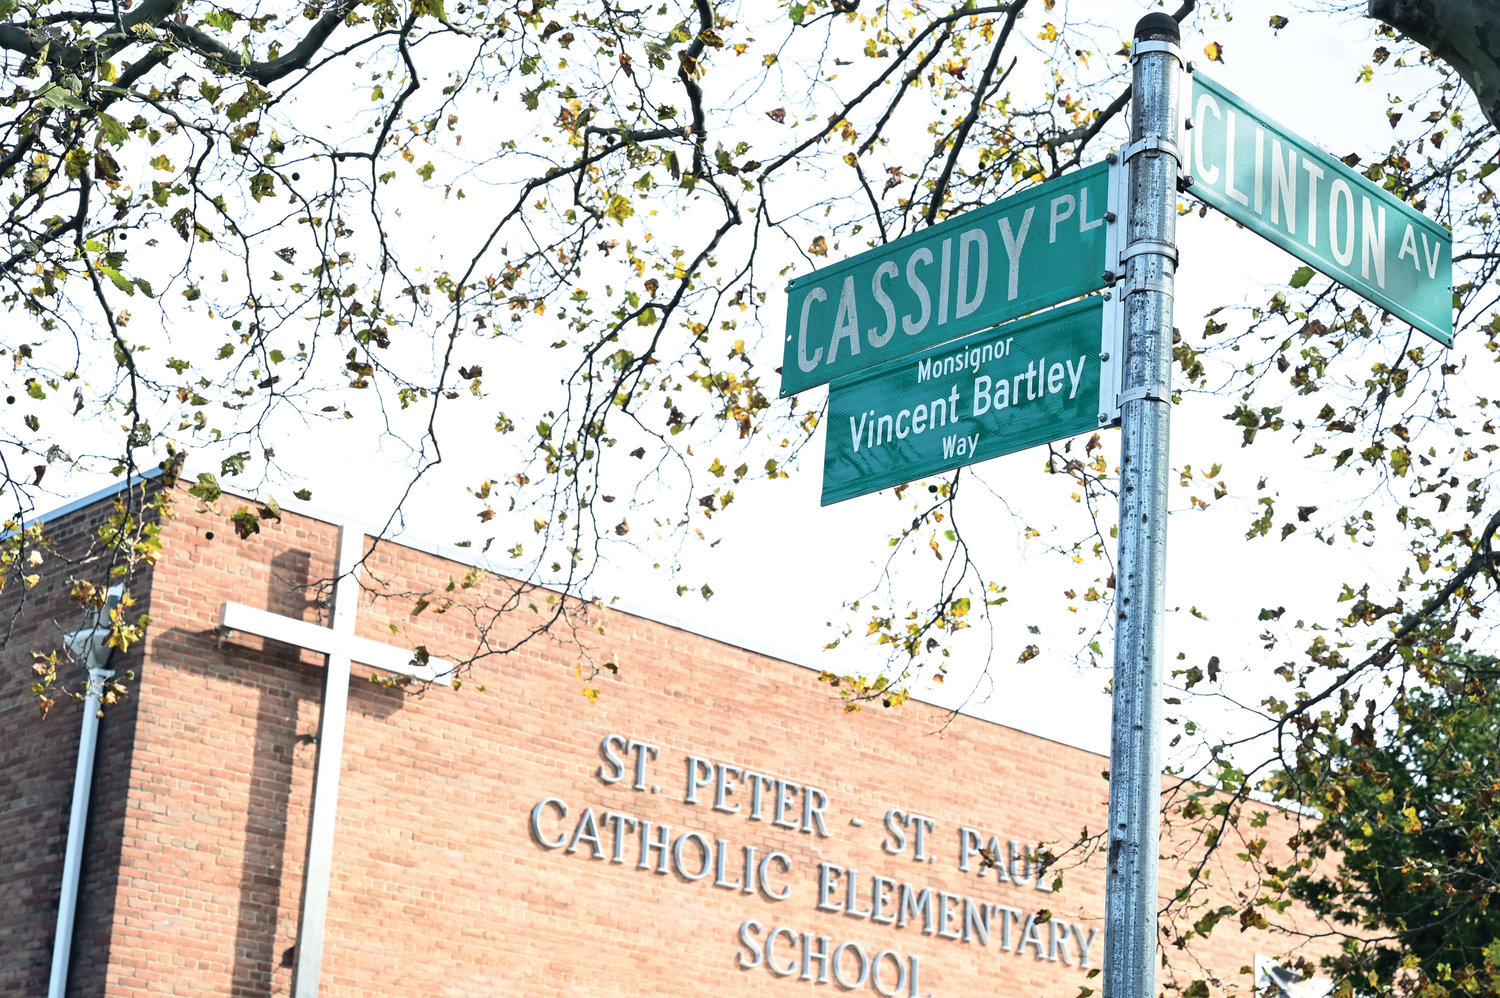 A street sign dedicated to the late Msgr. Vincent Bartley, a longtime pastor of St. Paul parish on Staten Island, was unveiled Oct. 26 in front of St. Peter-St. Paul School, at the corner of Cassidy Place and Clinton Avenue, Staten Island.